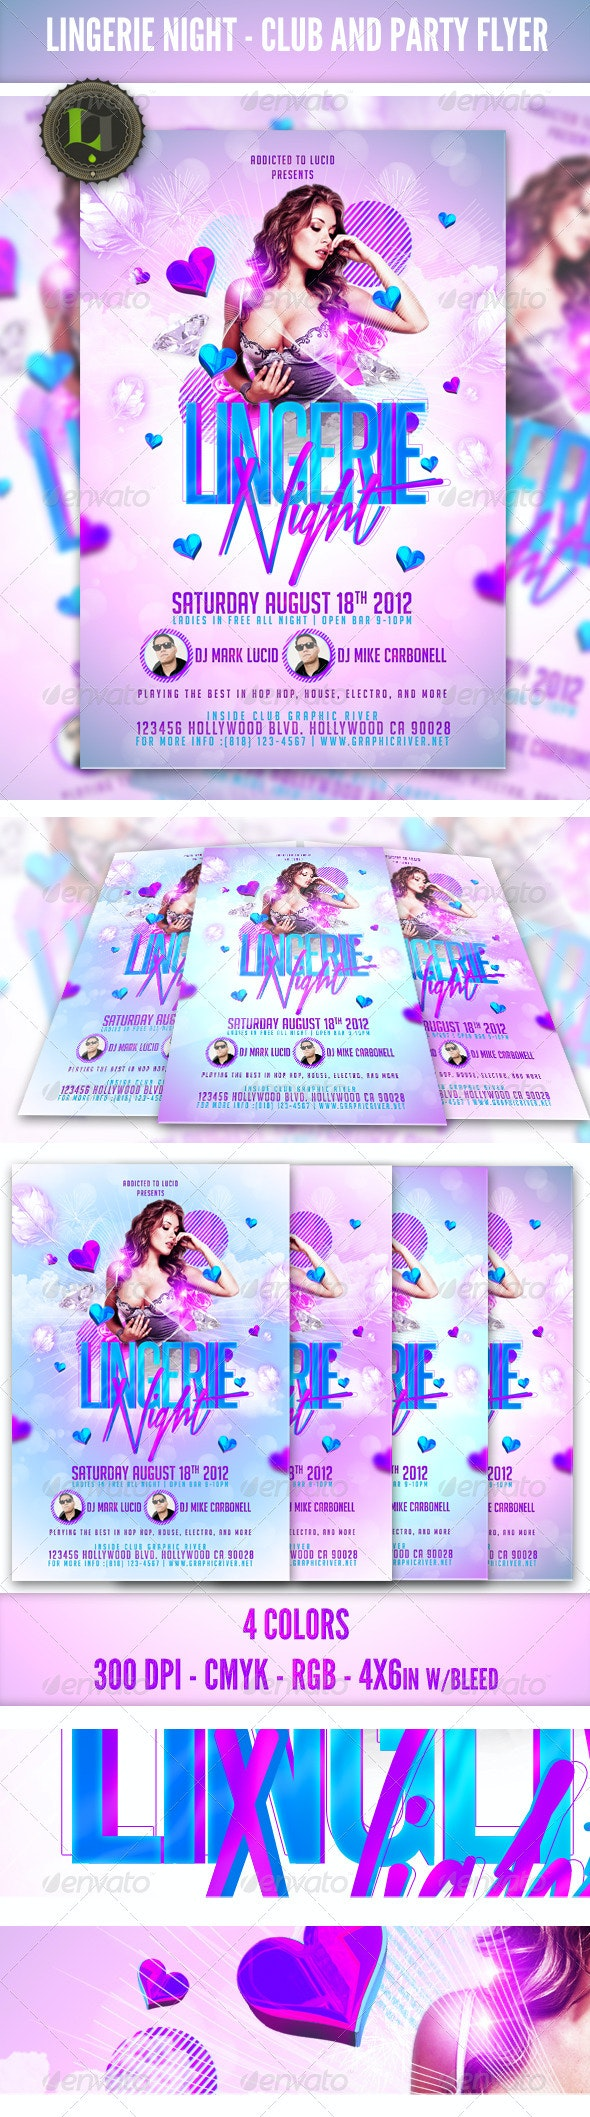 Ladies Night Party - Club Flyer Template - Clubs & Parties Events